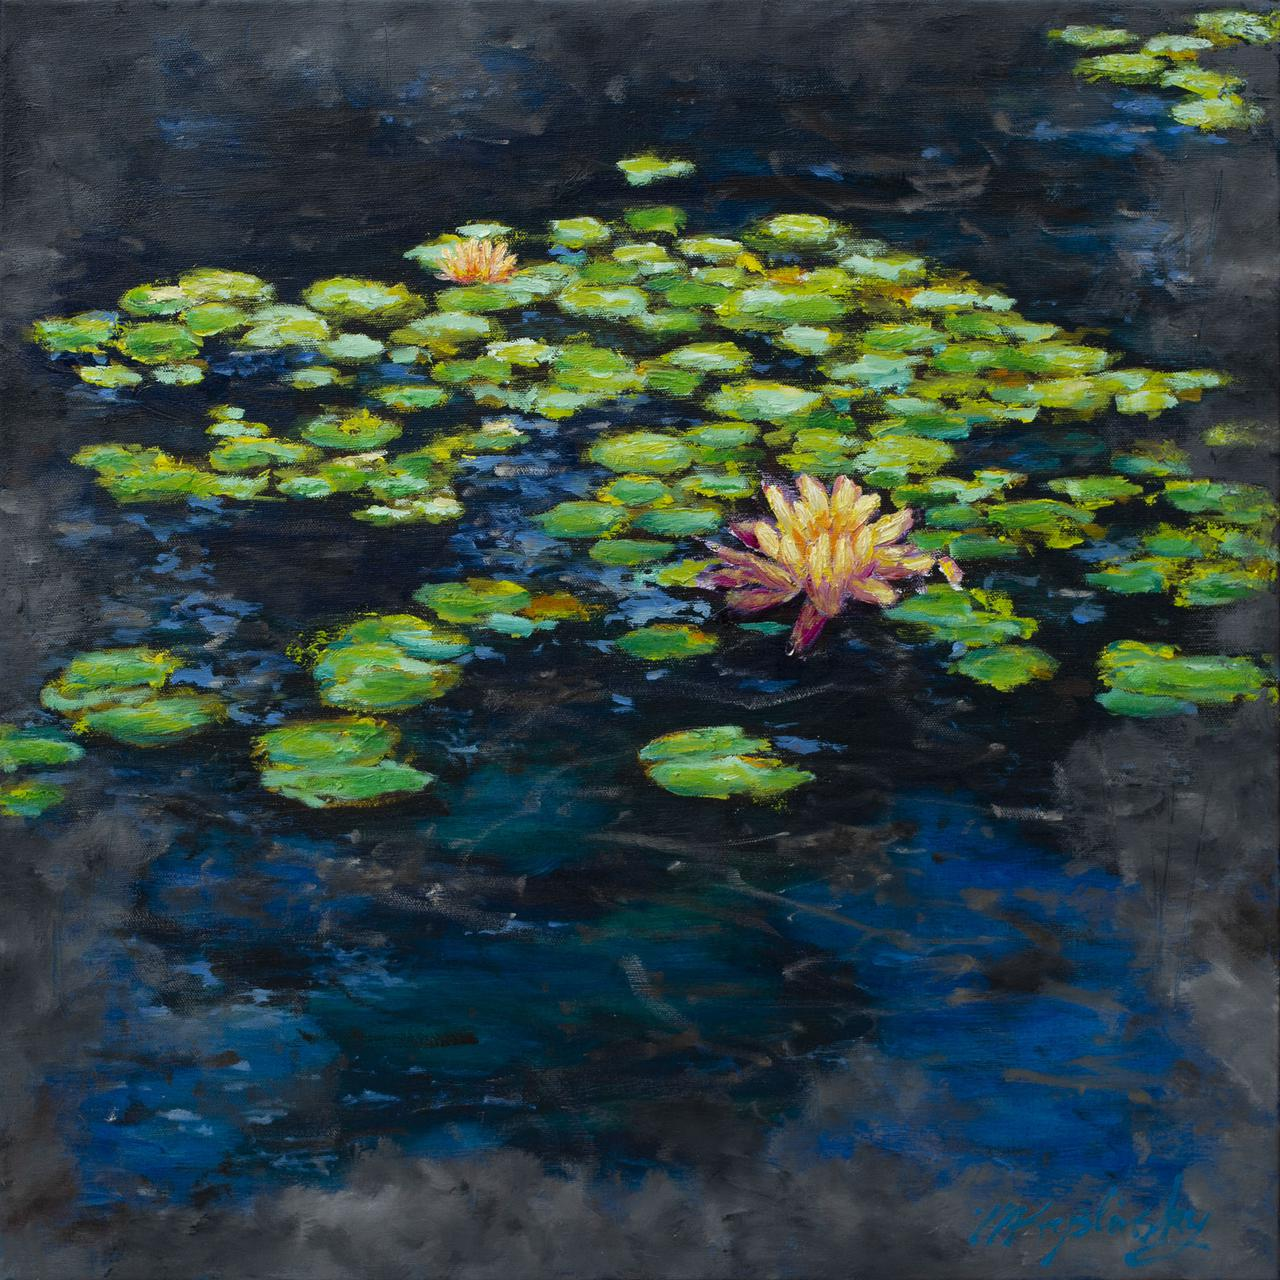 Entry Pond at the Gardens 24x24 inches oil on canvas by Matt Kaplinsky